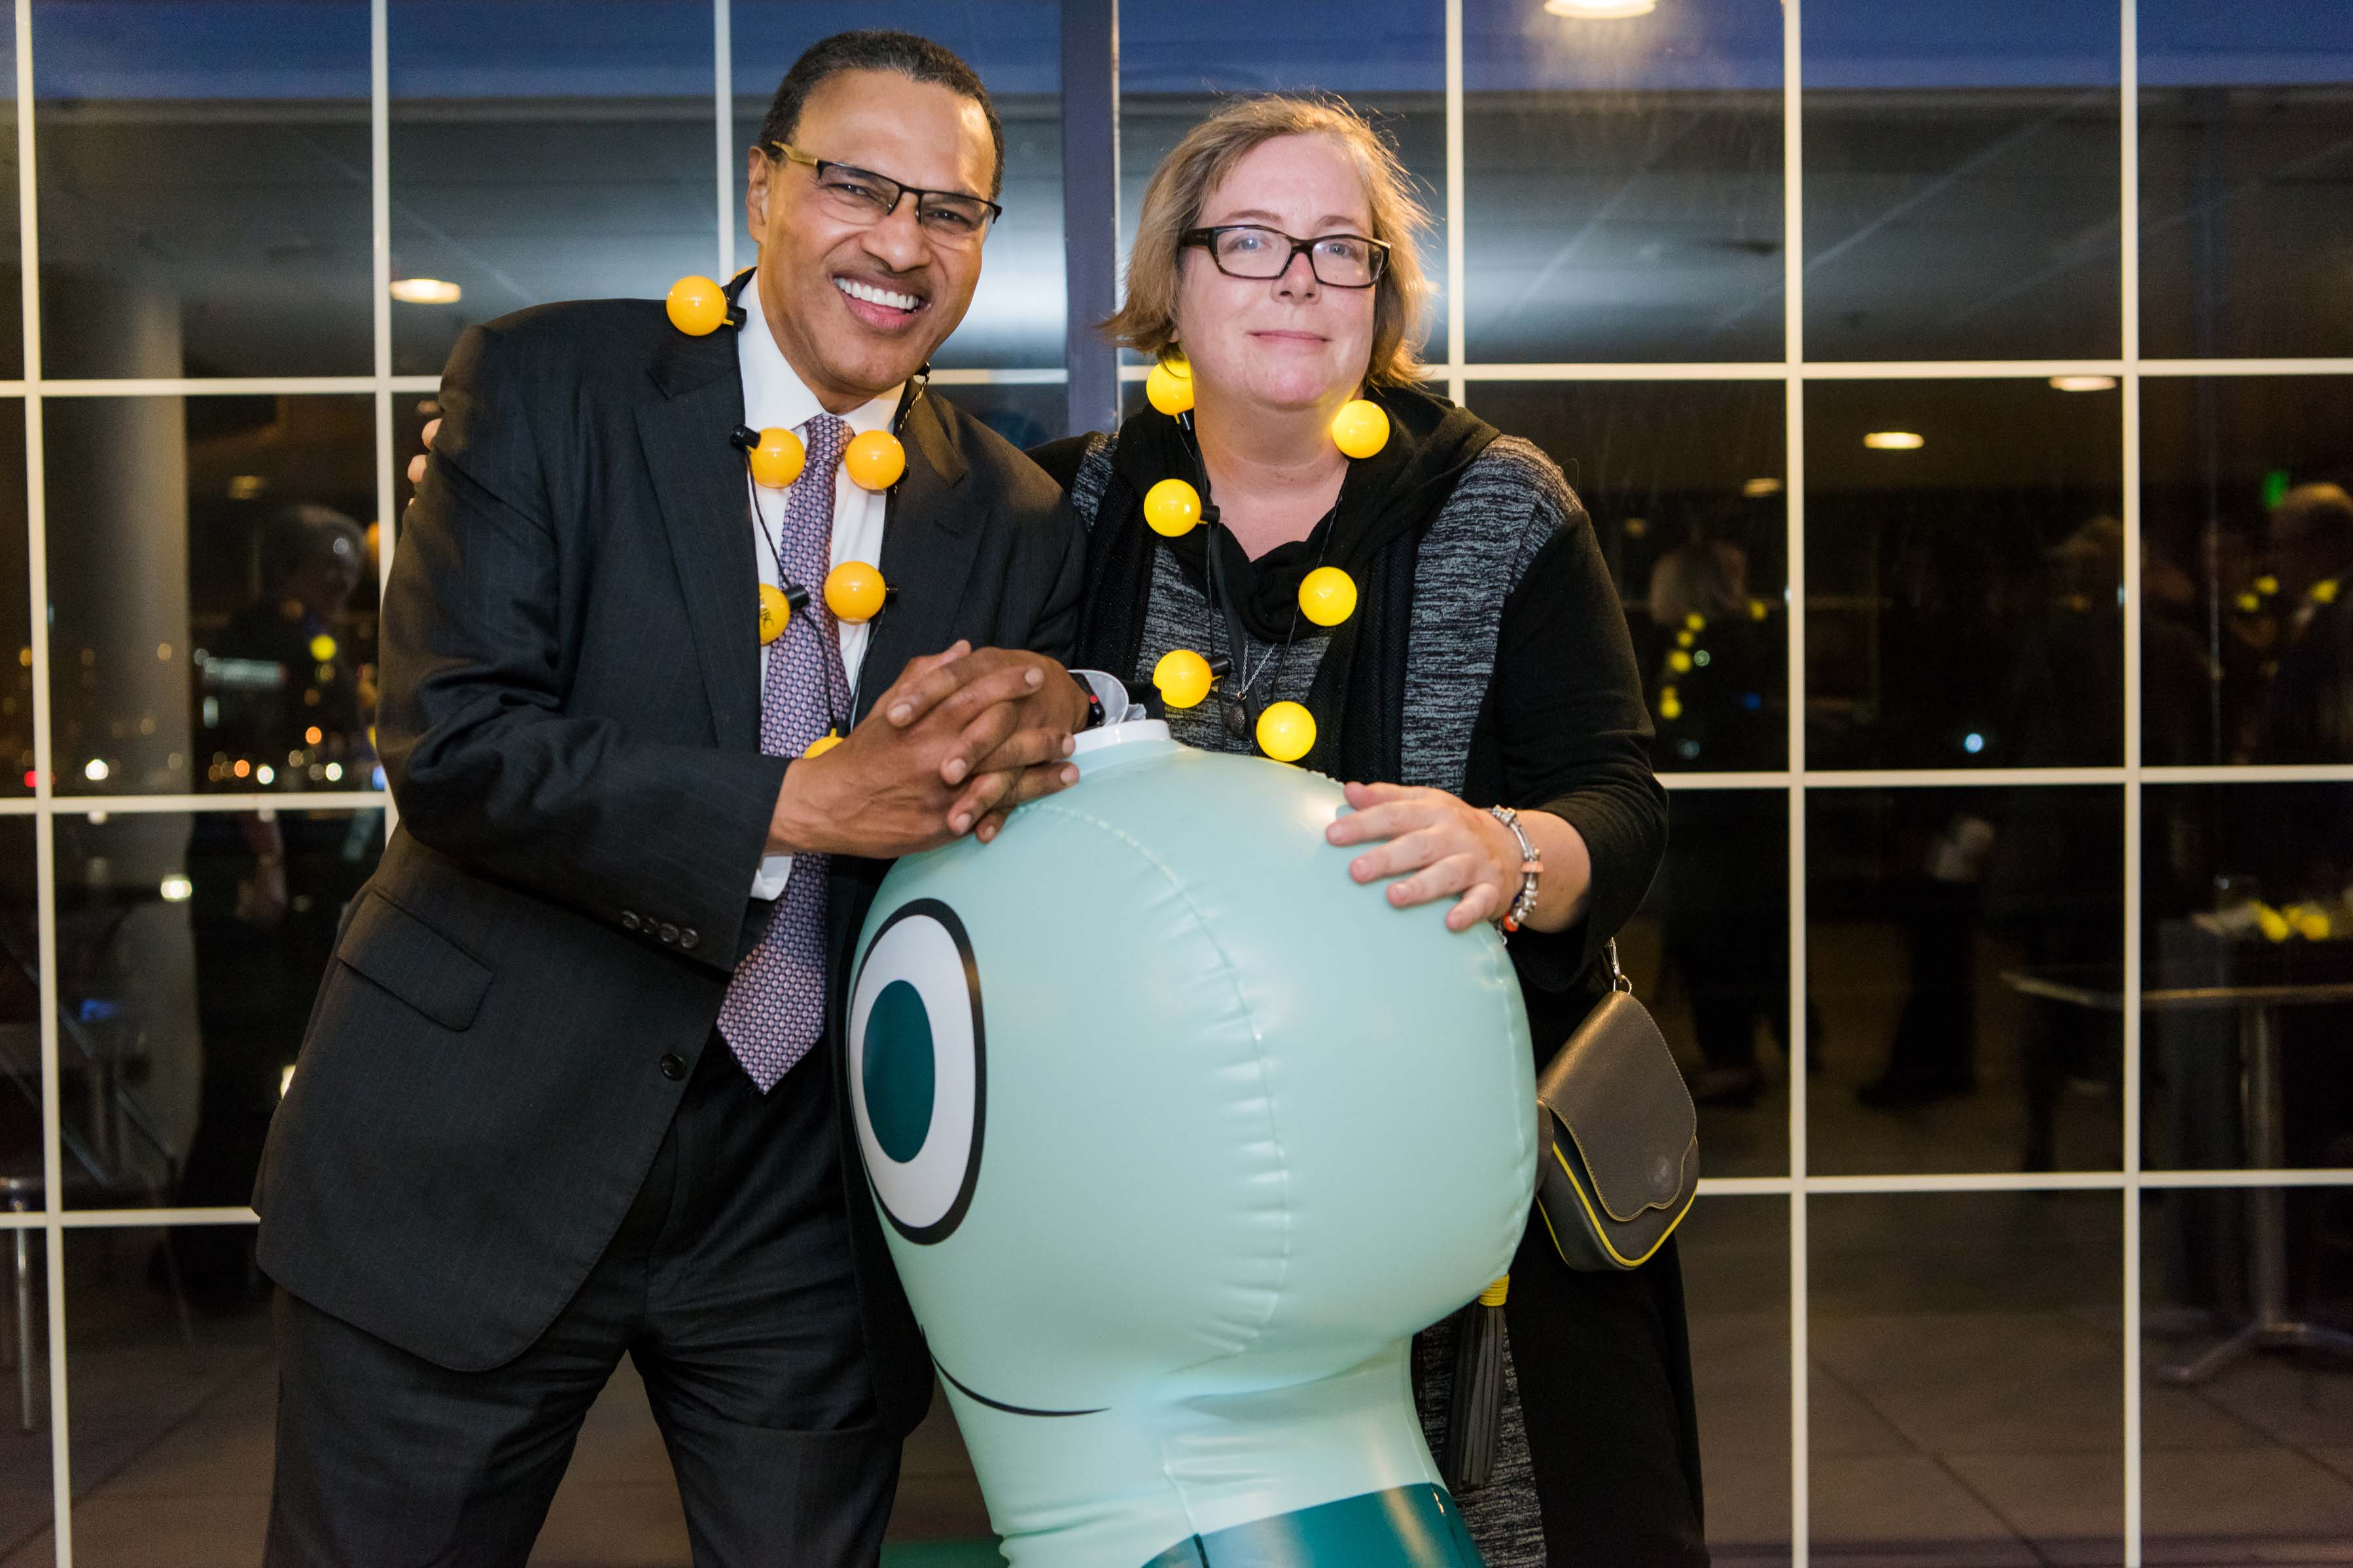 Hrabowski and other pose with blow up animal